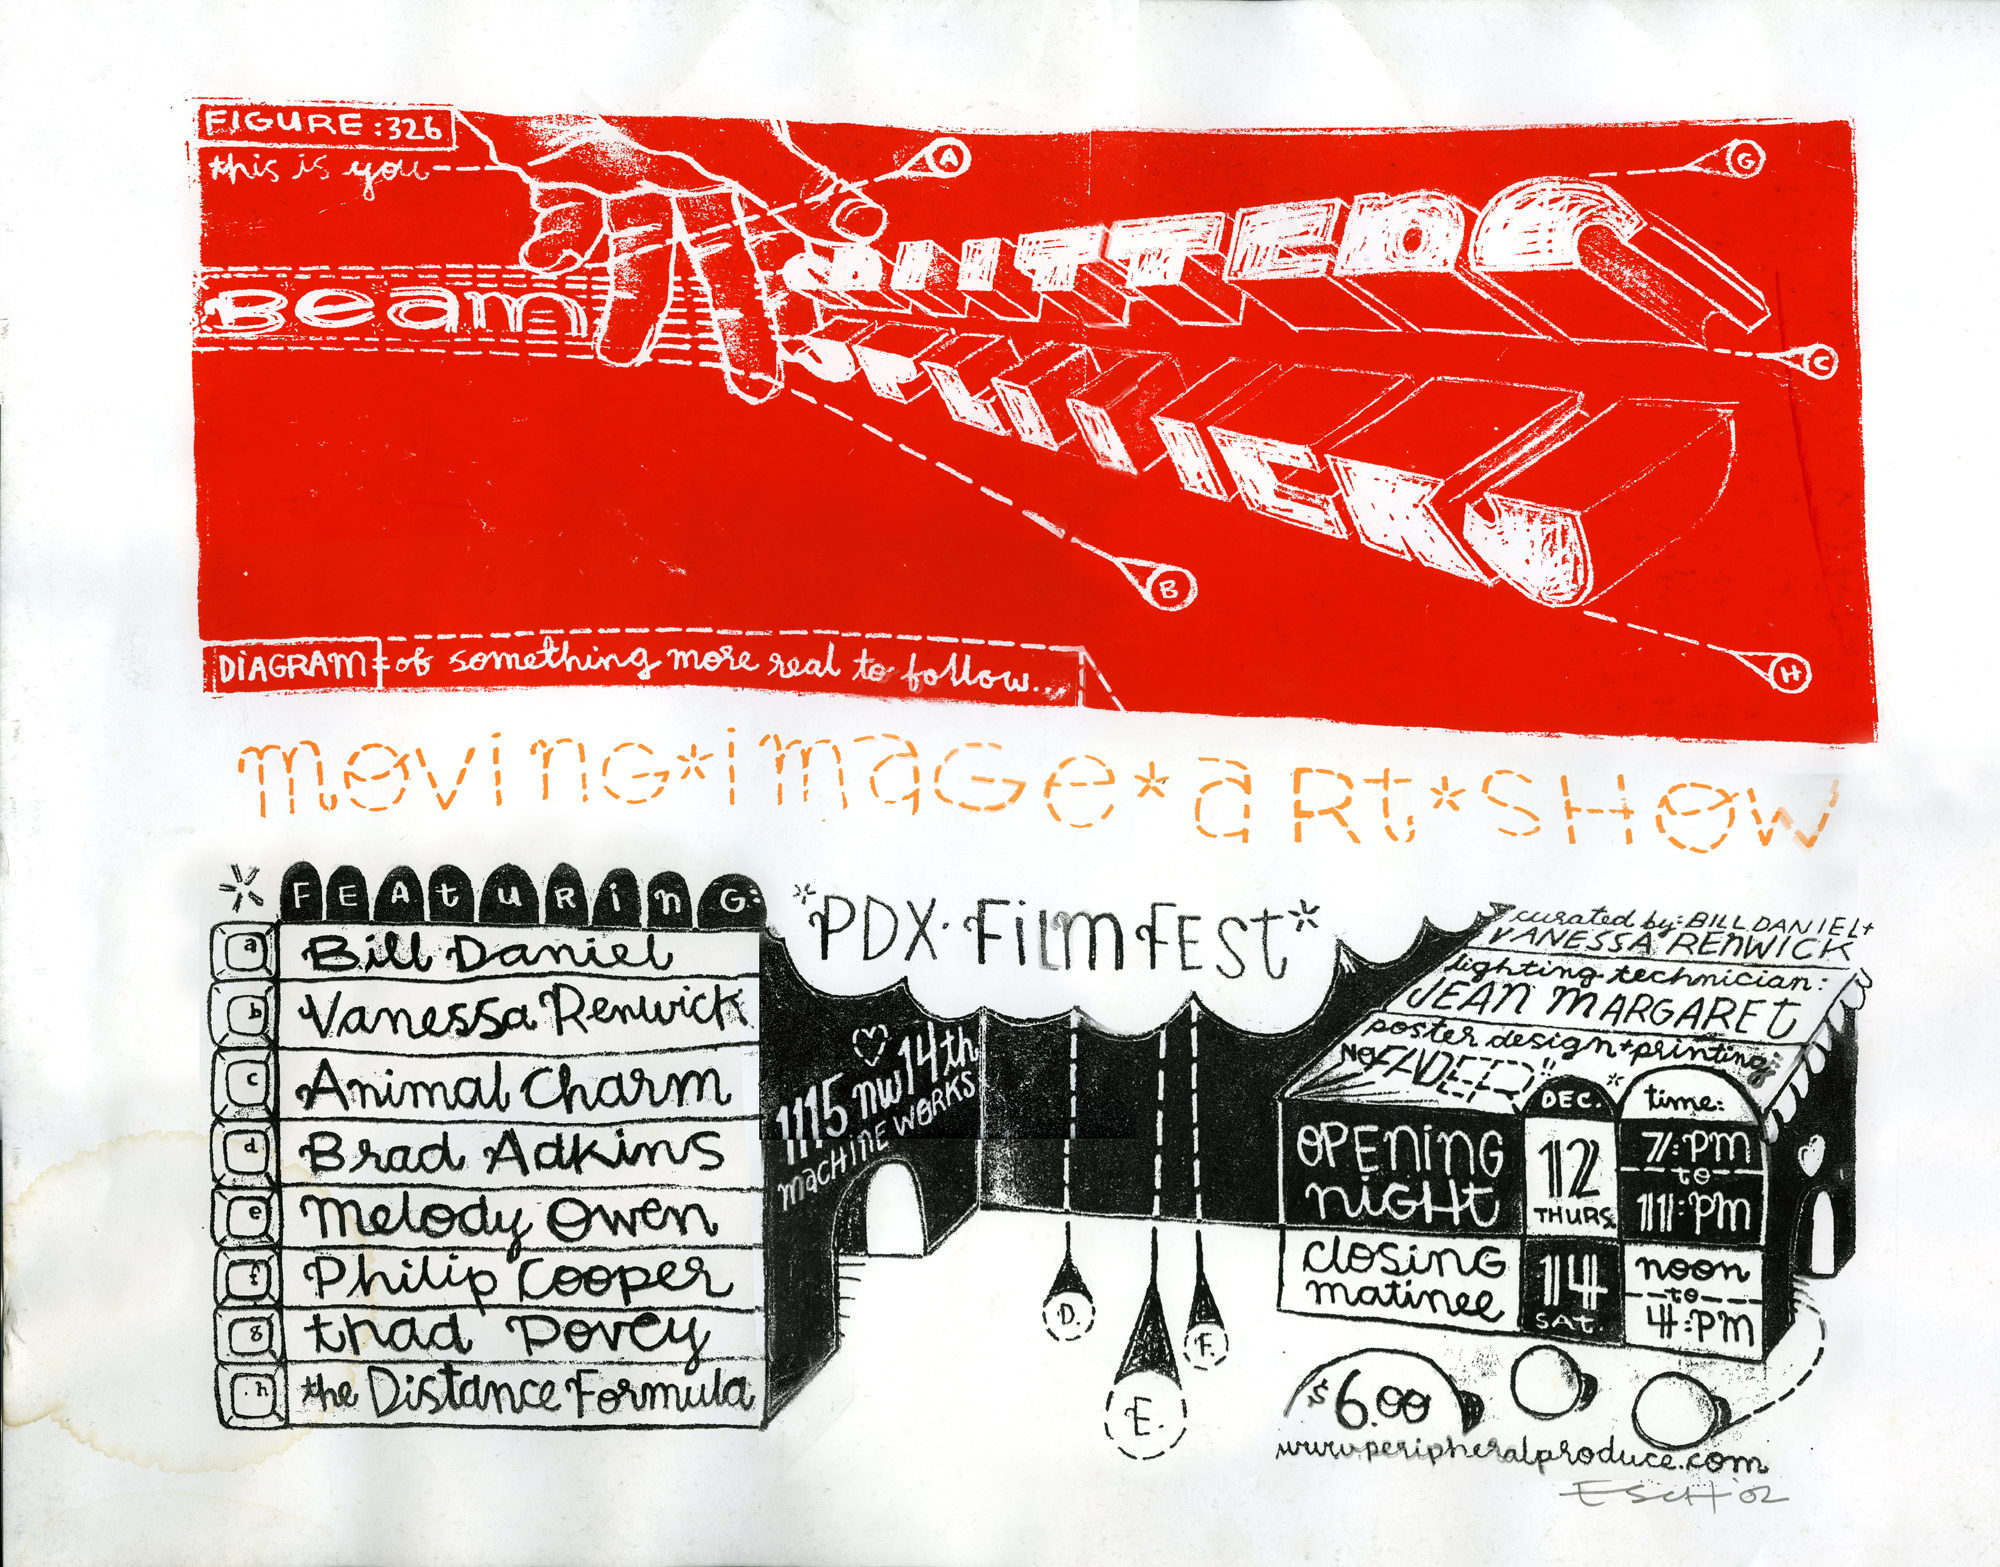 Poster by Johnne Eschleman